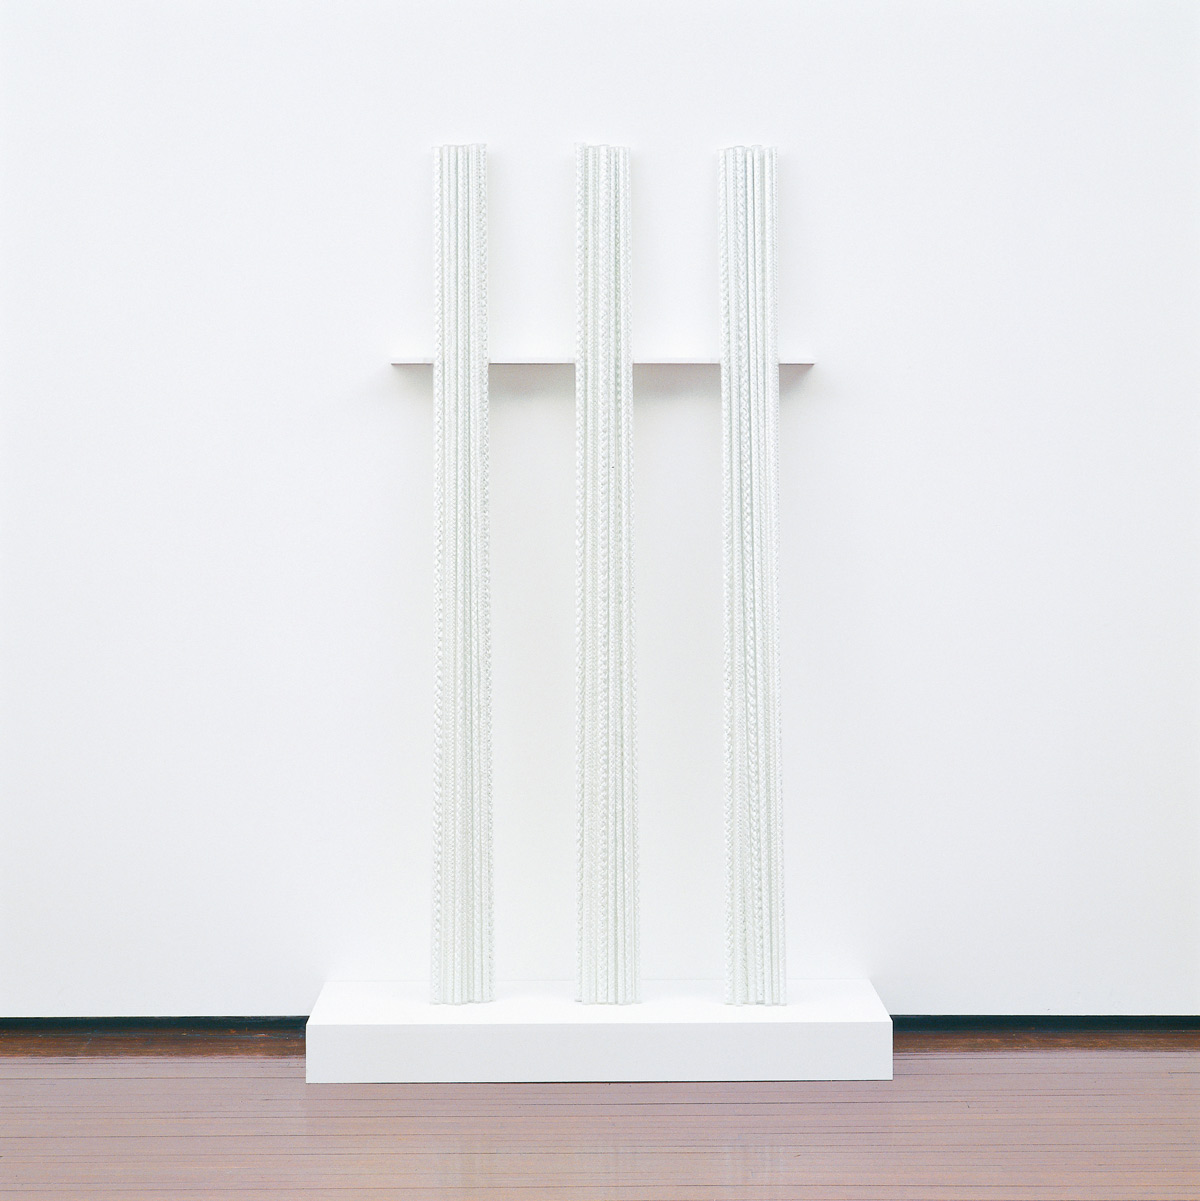 Increments and Shadows, 2002. Fibreglass rope, Perspex, wood, 36 parts, 220 x 60 cm, installation view Gitte Weise Gallery Sydney